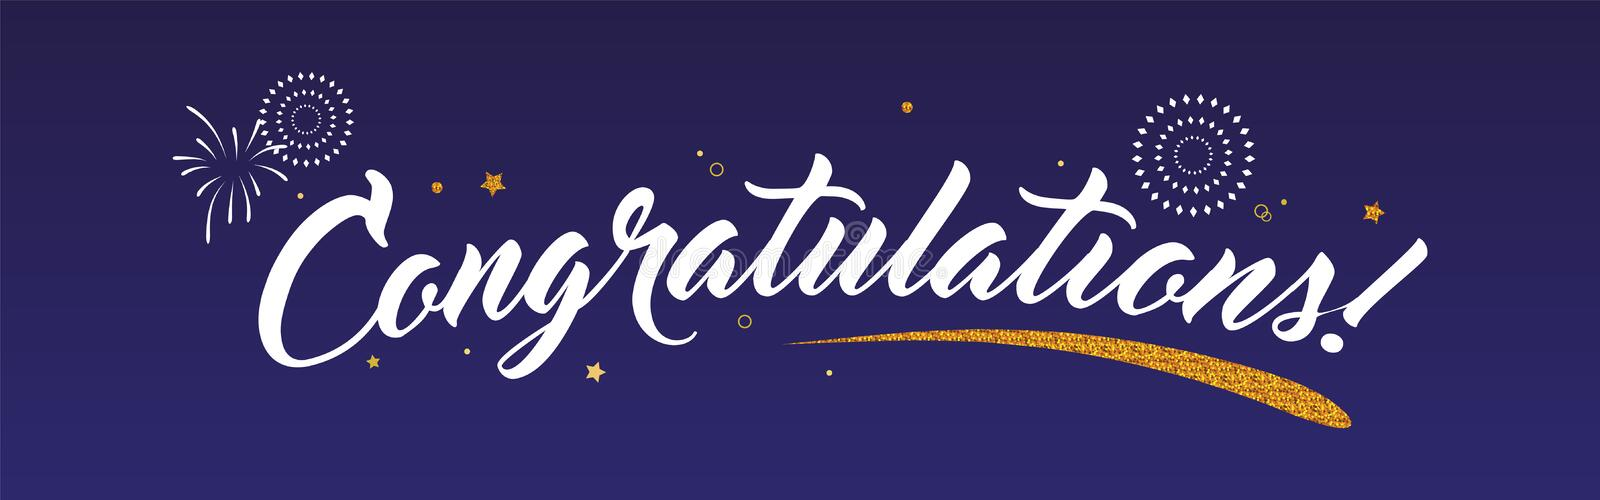 Congrats, Congratulations banner with glitter decoration and fireworks. Handwritten modern brush lettering dark. Background isolated vector card stock illustration